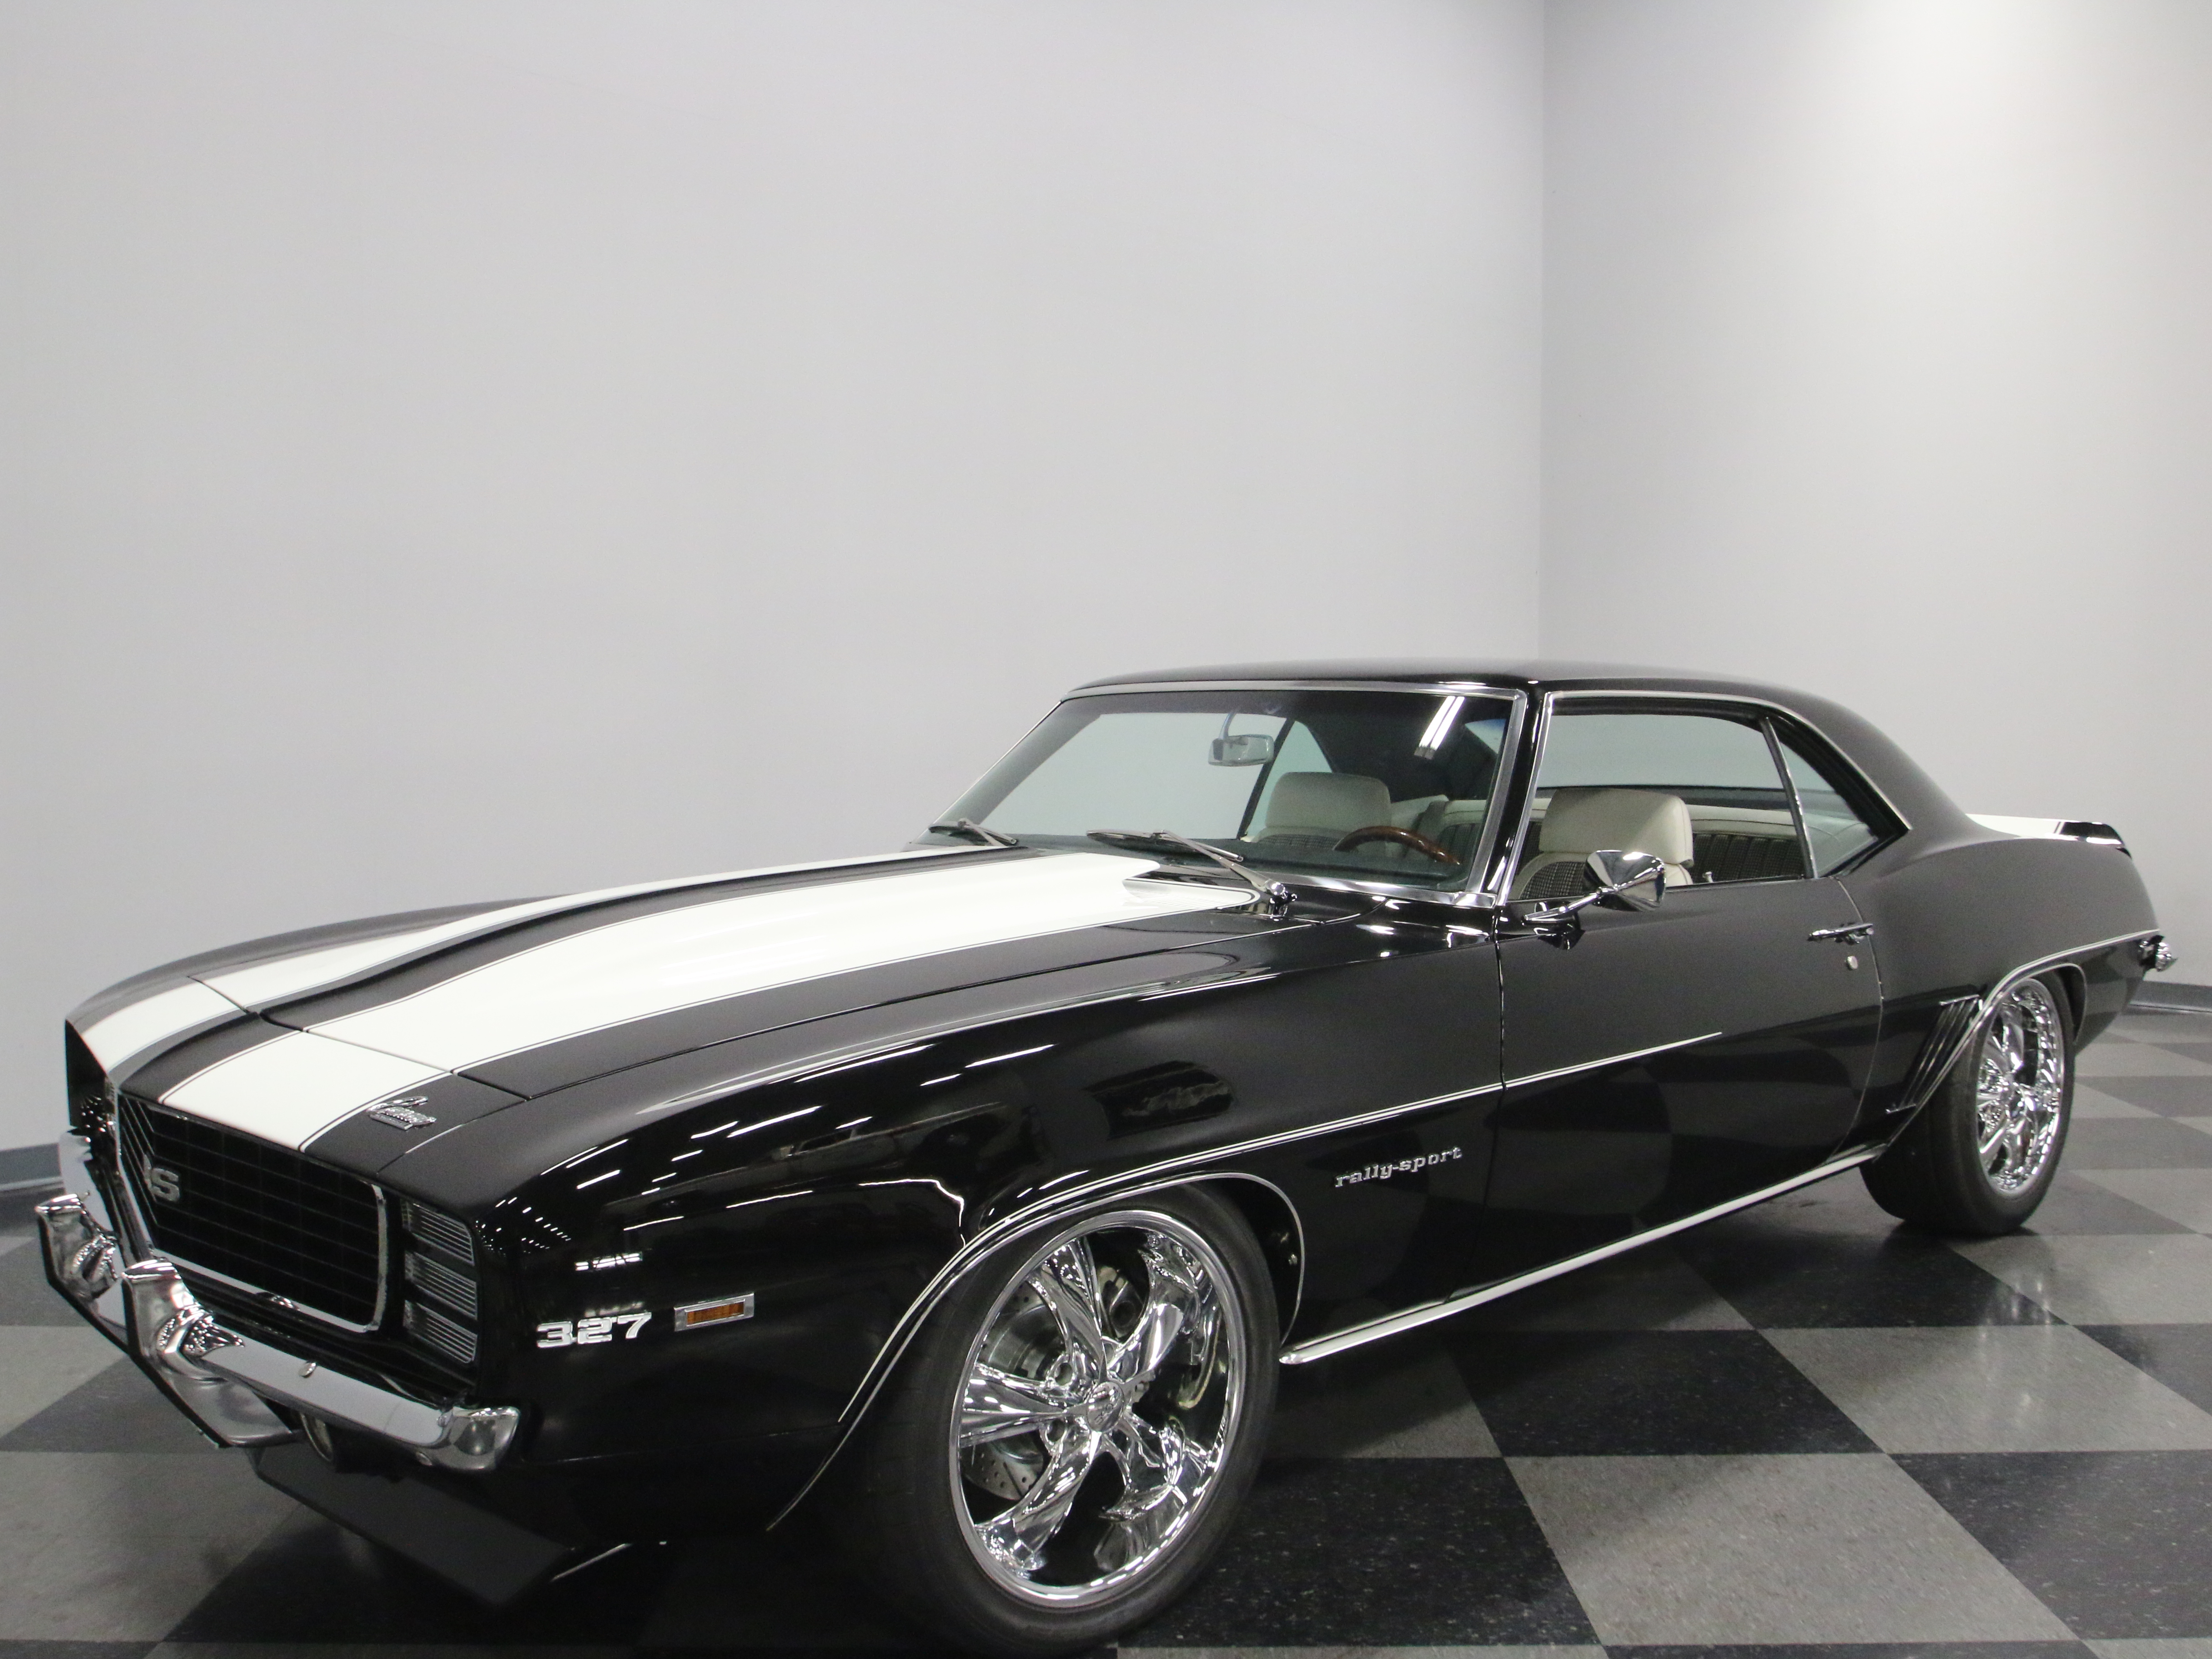 upgraded engine 1969 chevrolet camaro rs coupe restored for sale. Black Bedroom Furniture Sets. Home Design Ideas